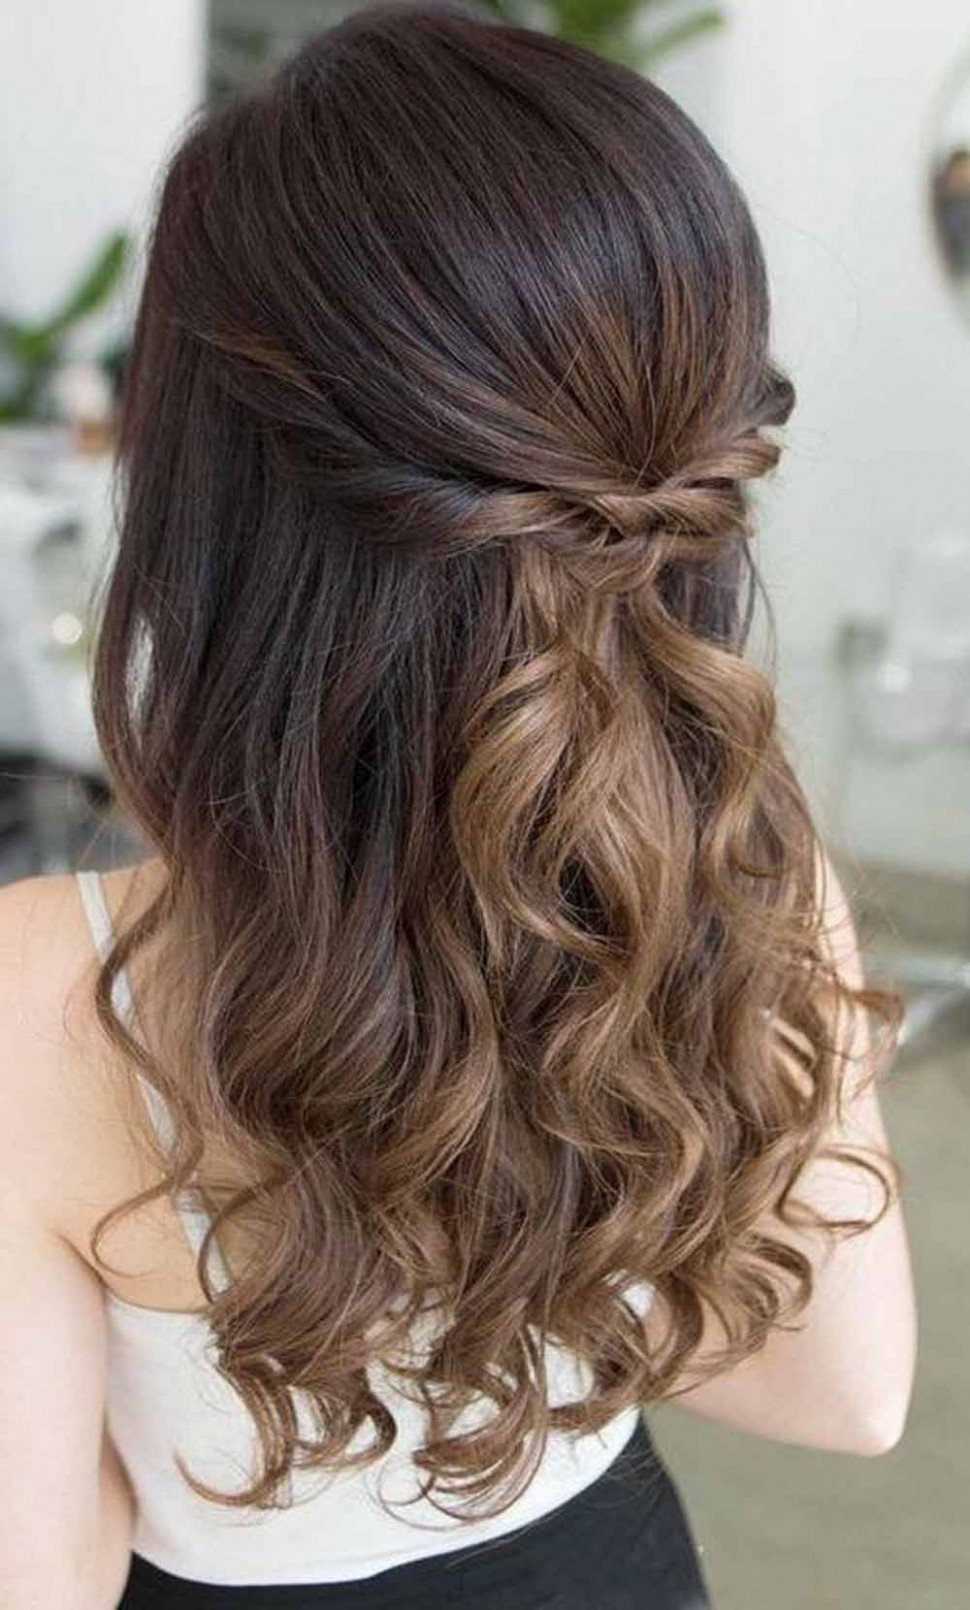 12 Prettiest Half Up Half Down Wedding Hairstyles For Women In 12 Prom Hairstyles For Medium Hair Down